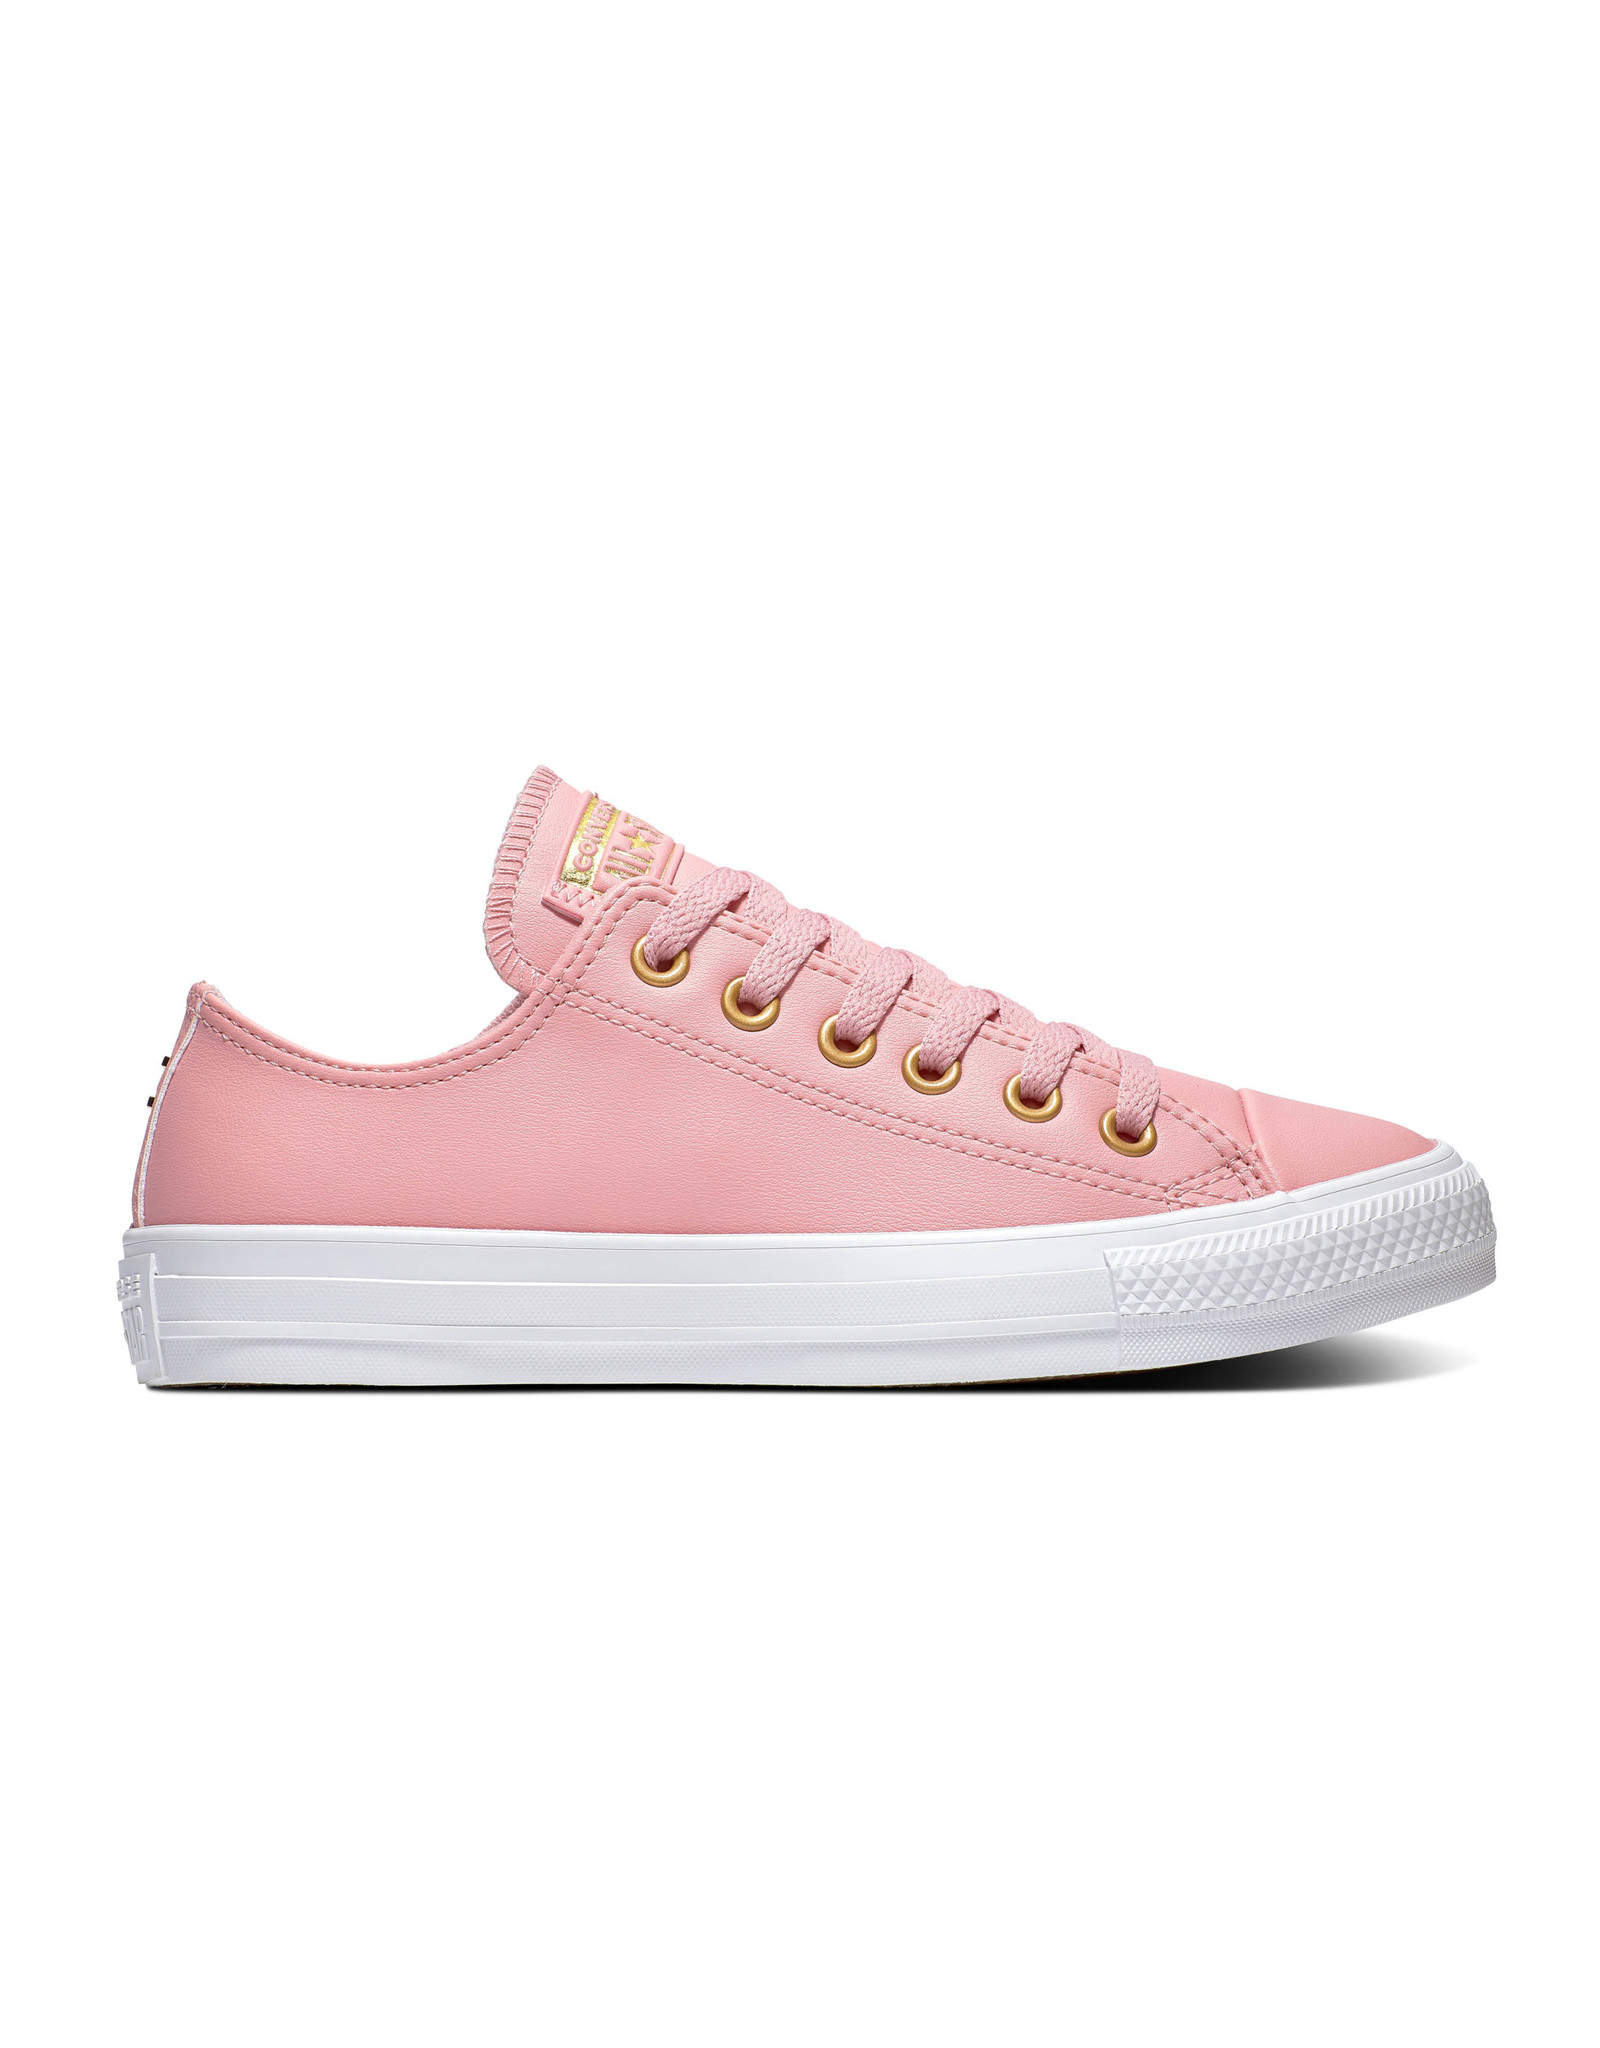 CONVERSE CHUCK TAYLOR OX LOTUS PINK/GOLD/WHITE C14SYP-568661C